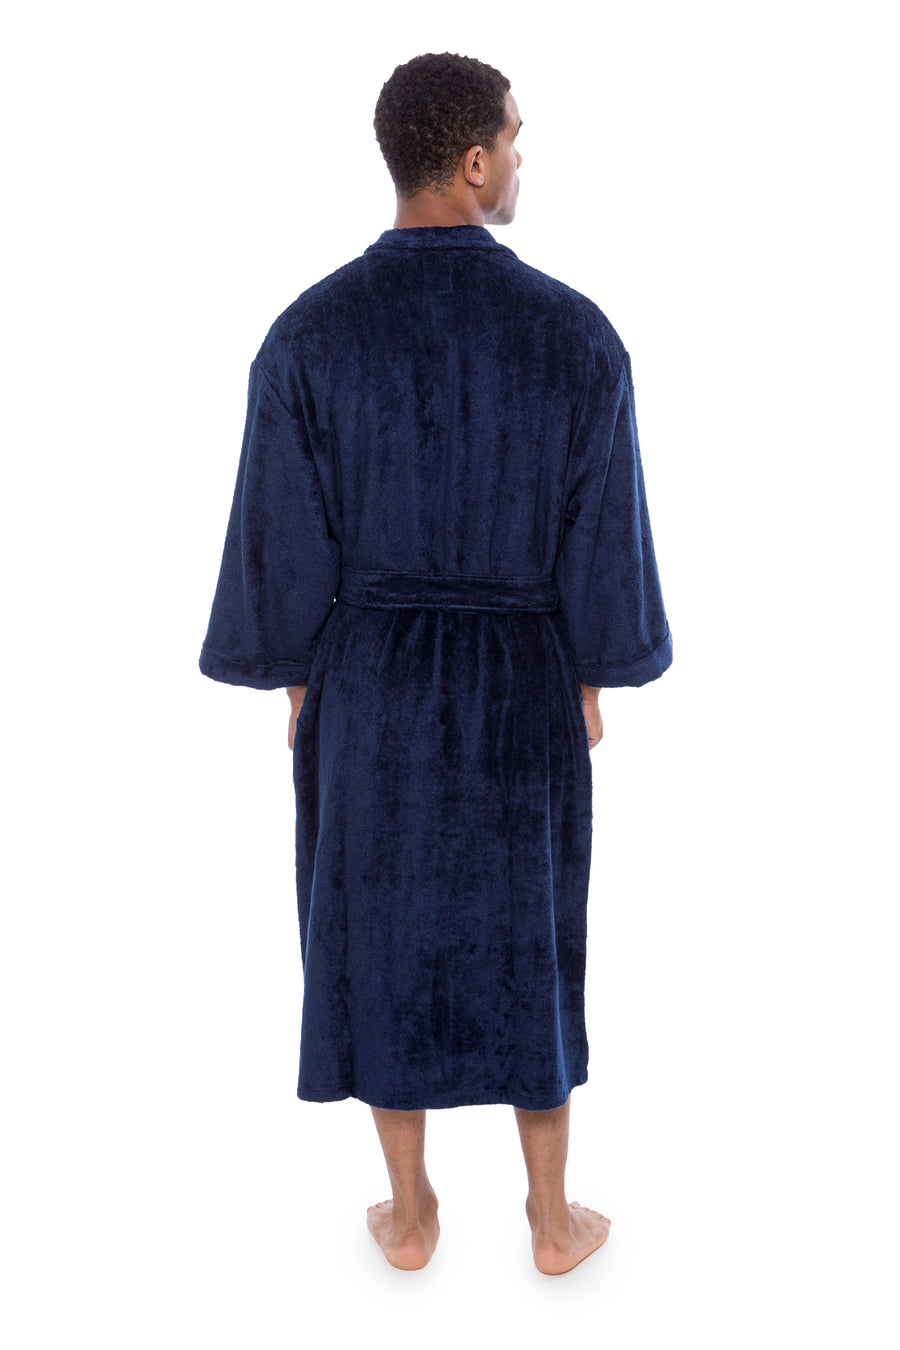 Turilano - testing23451234 - Bathrobes